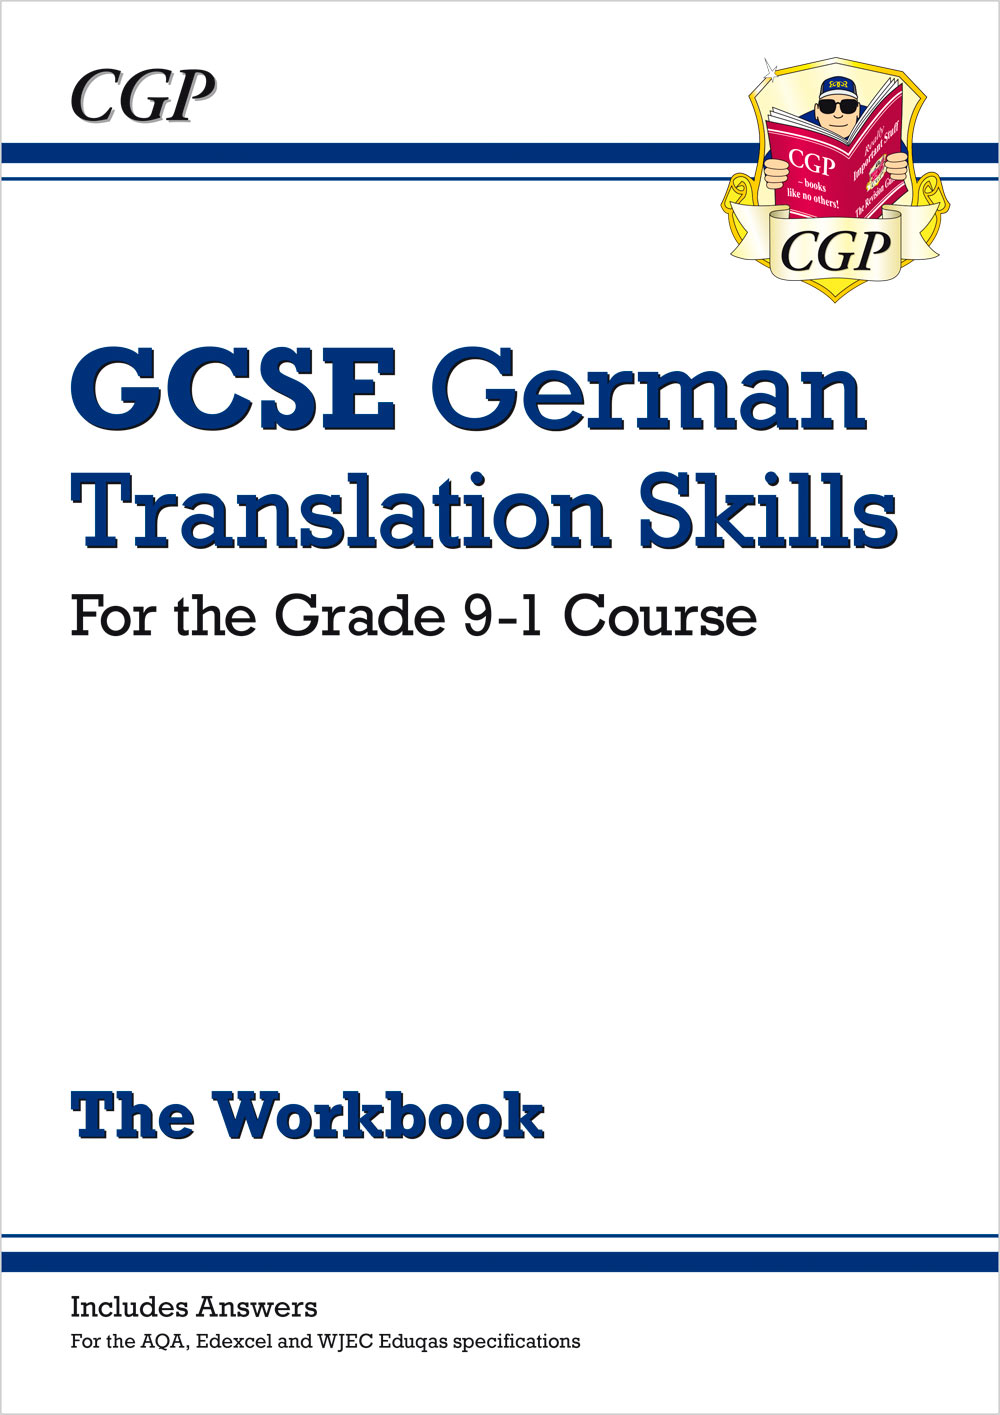 DTW41 - New Grade 9-1 GCSE German Translation Skills Workbook (includes Answers)